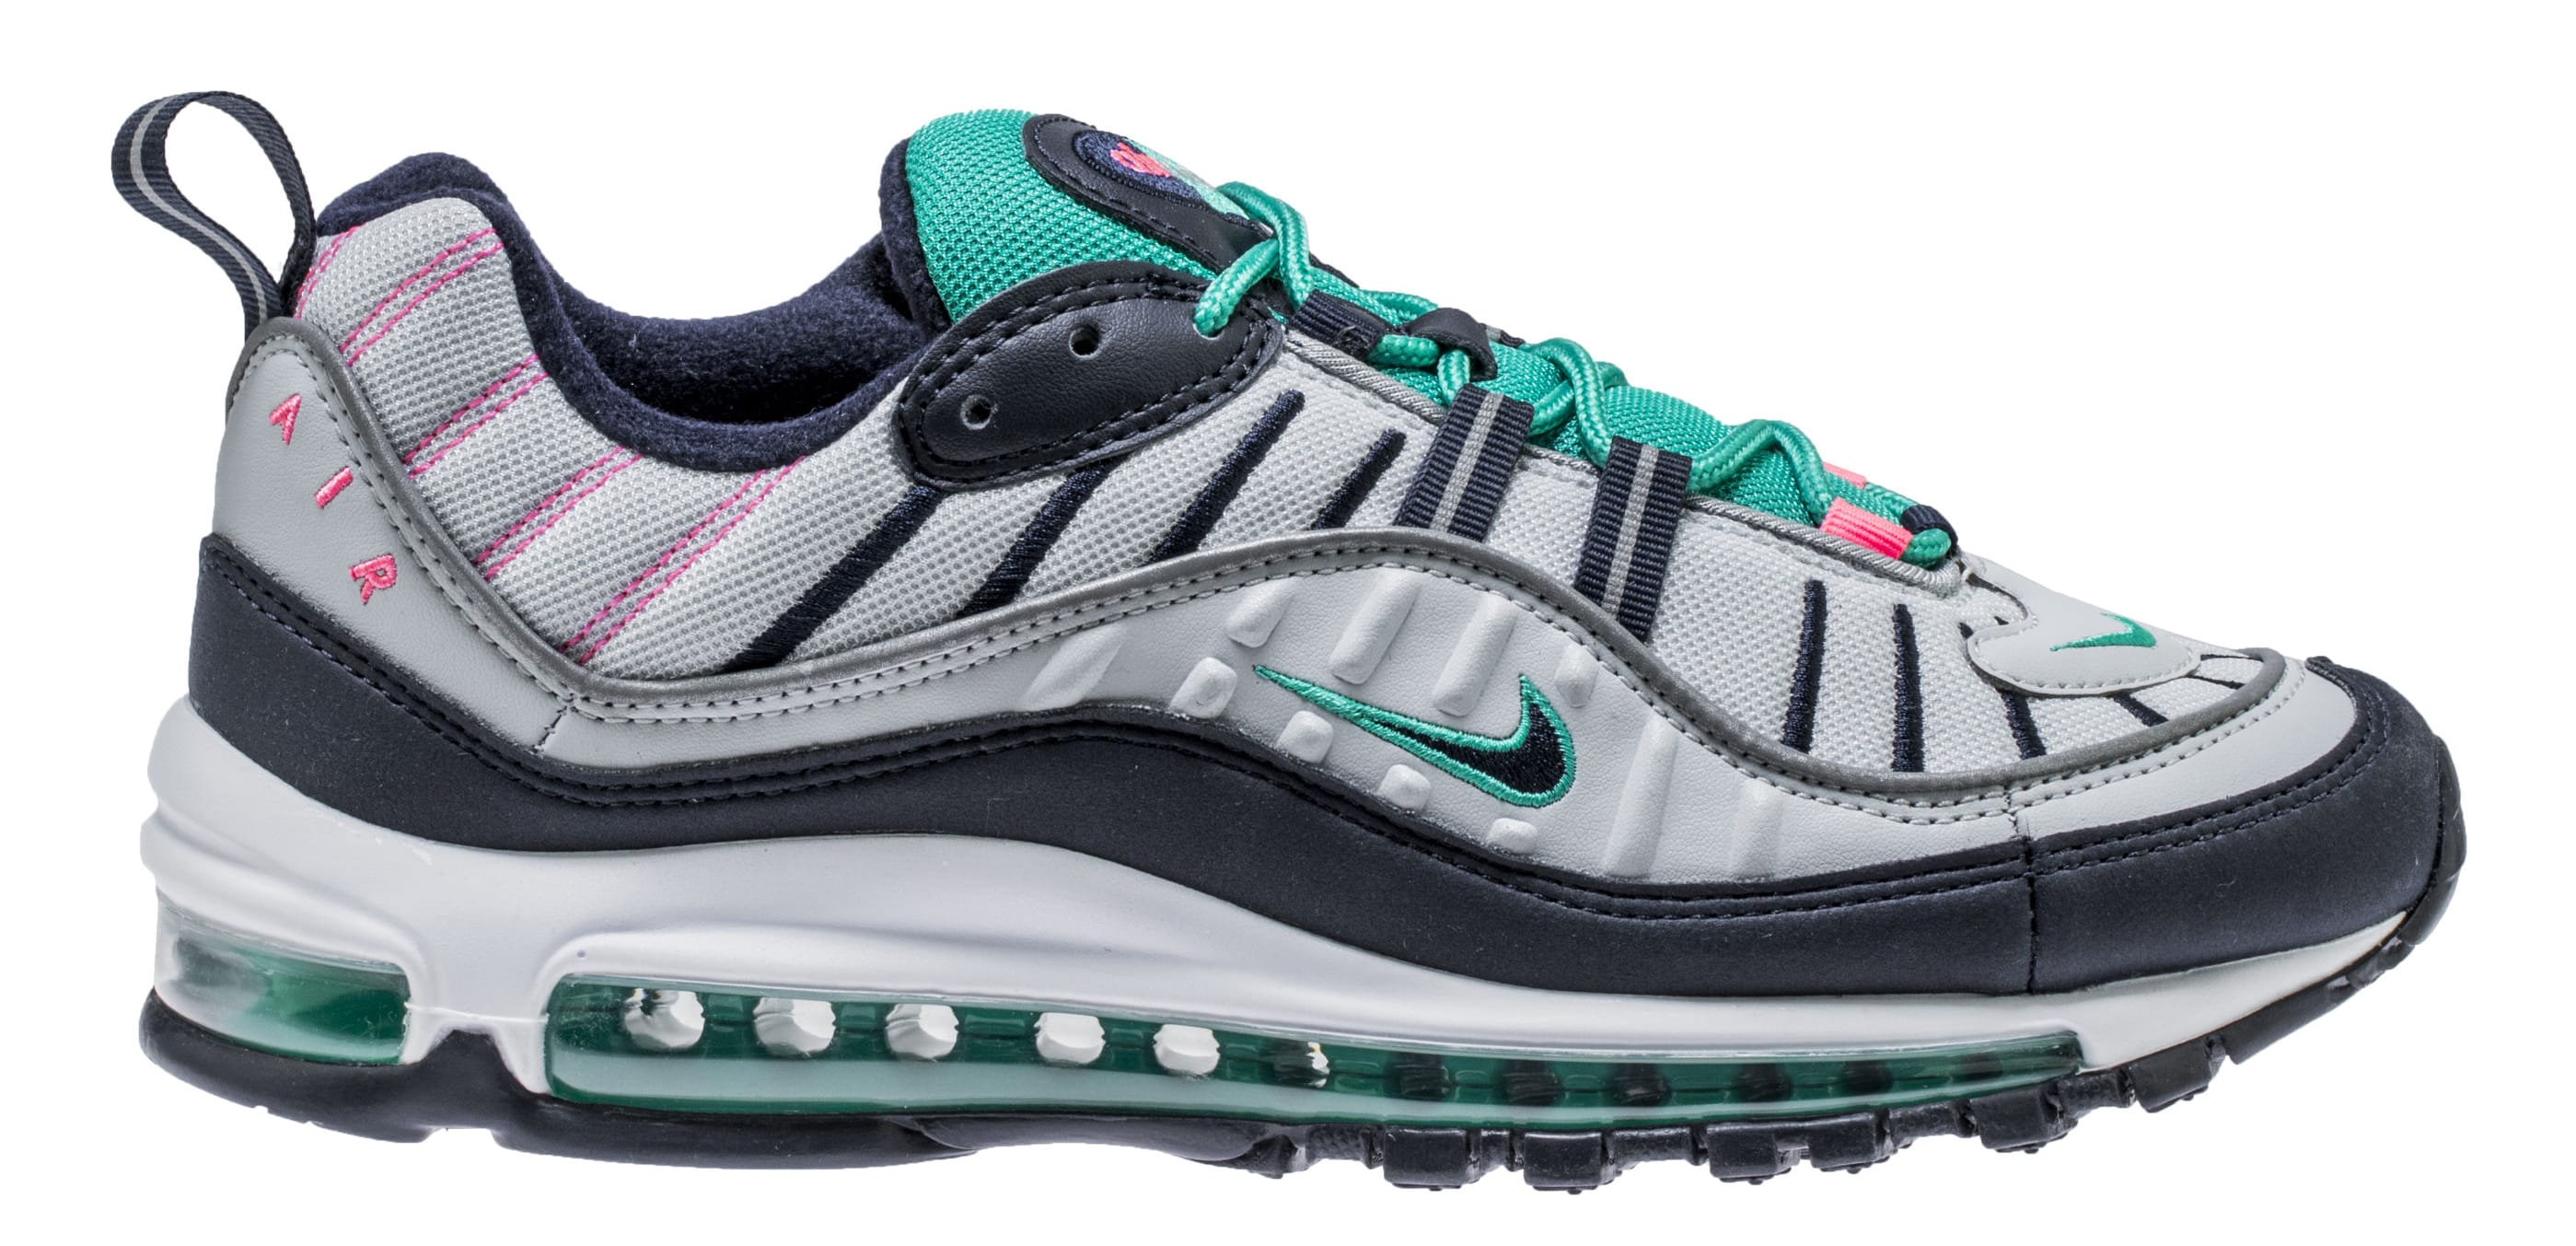 Nike Air Max 98 'Pure Platinum/Obsidian/Kinetic Green' 640744-005 (Lateral)